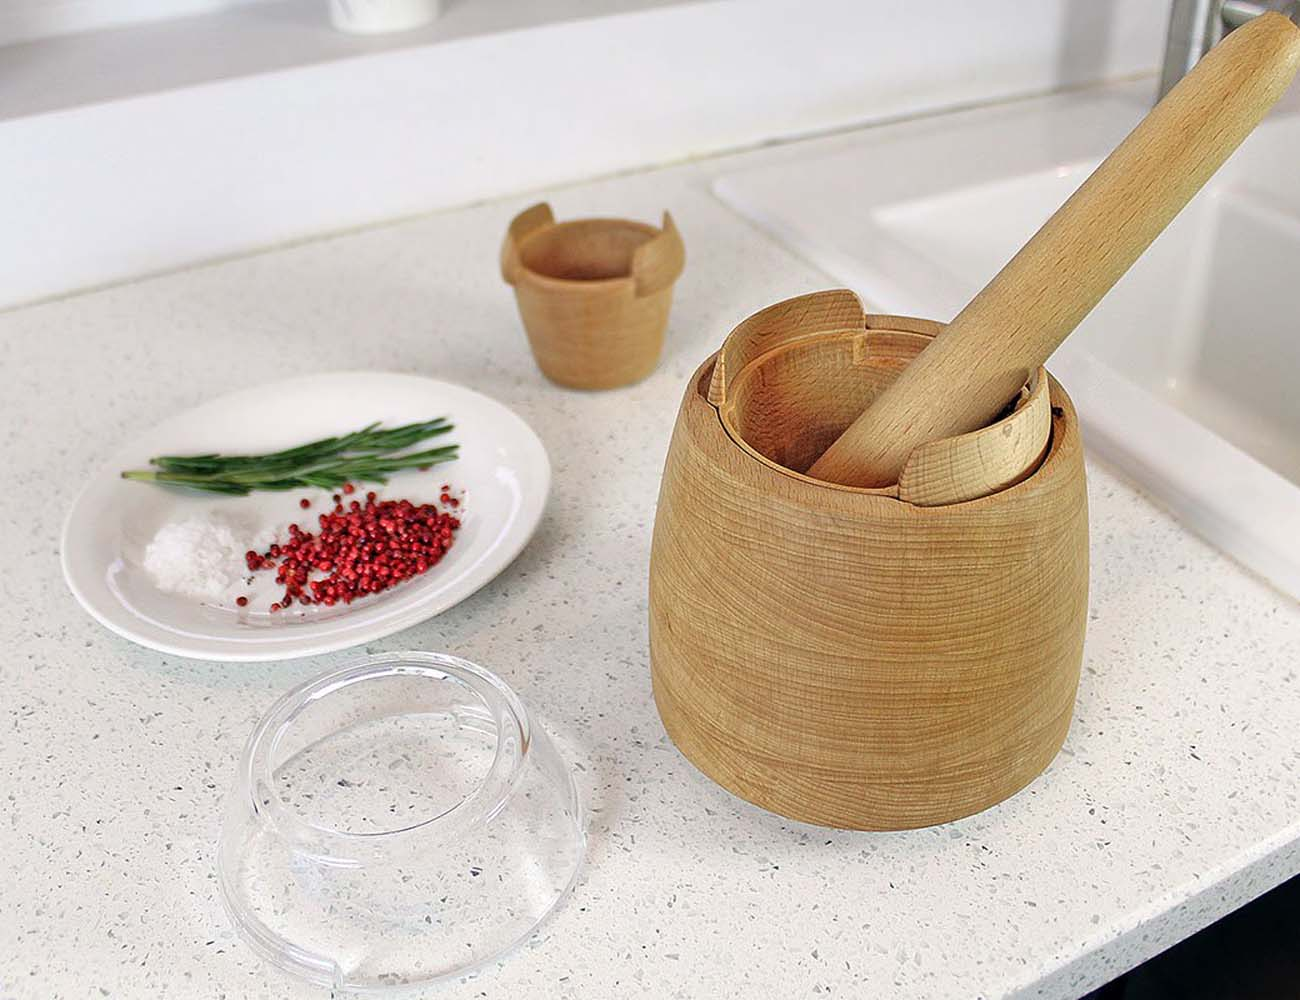 Mesto+%26%238211%3B+Updating+The+Mortar+%26amp%3B+Pestle+For+The+21st+Century